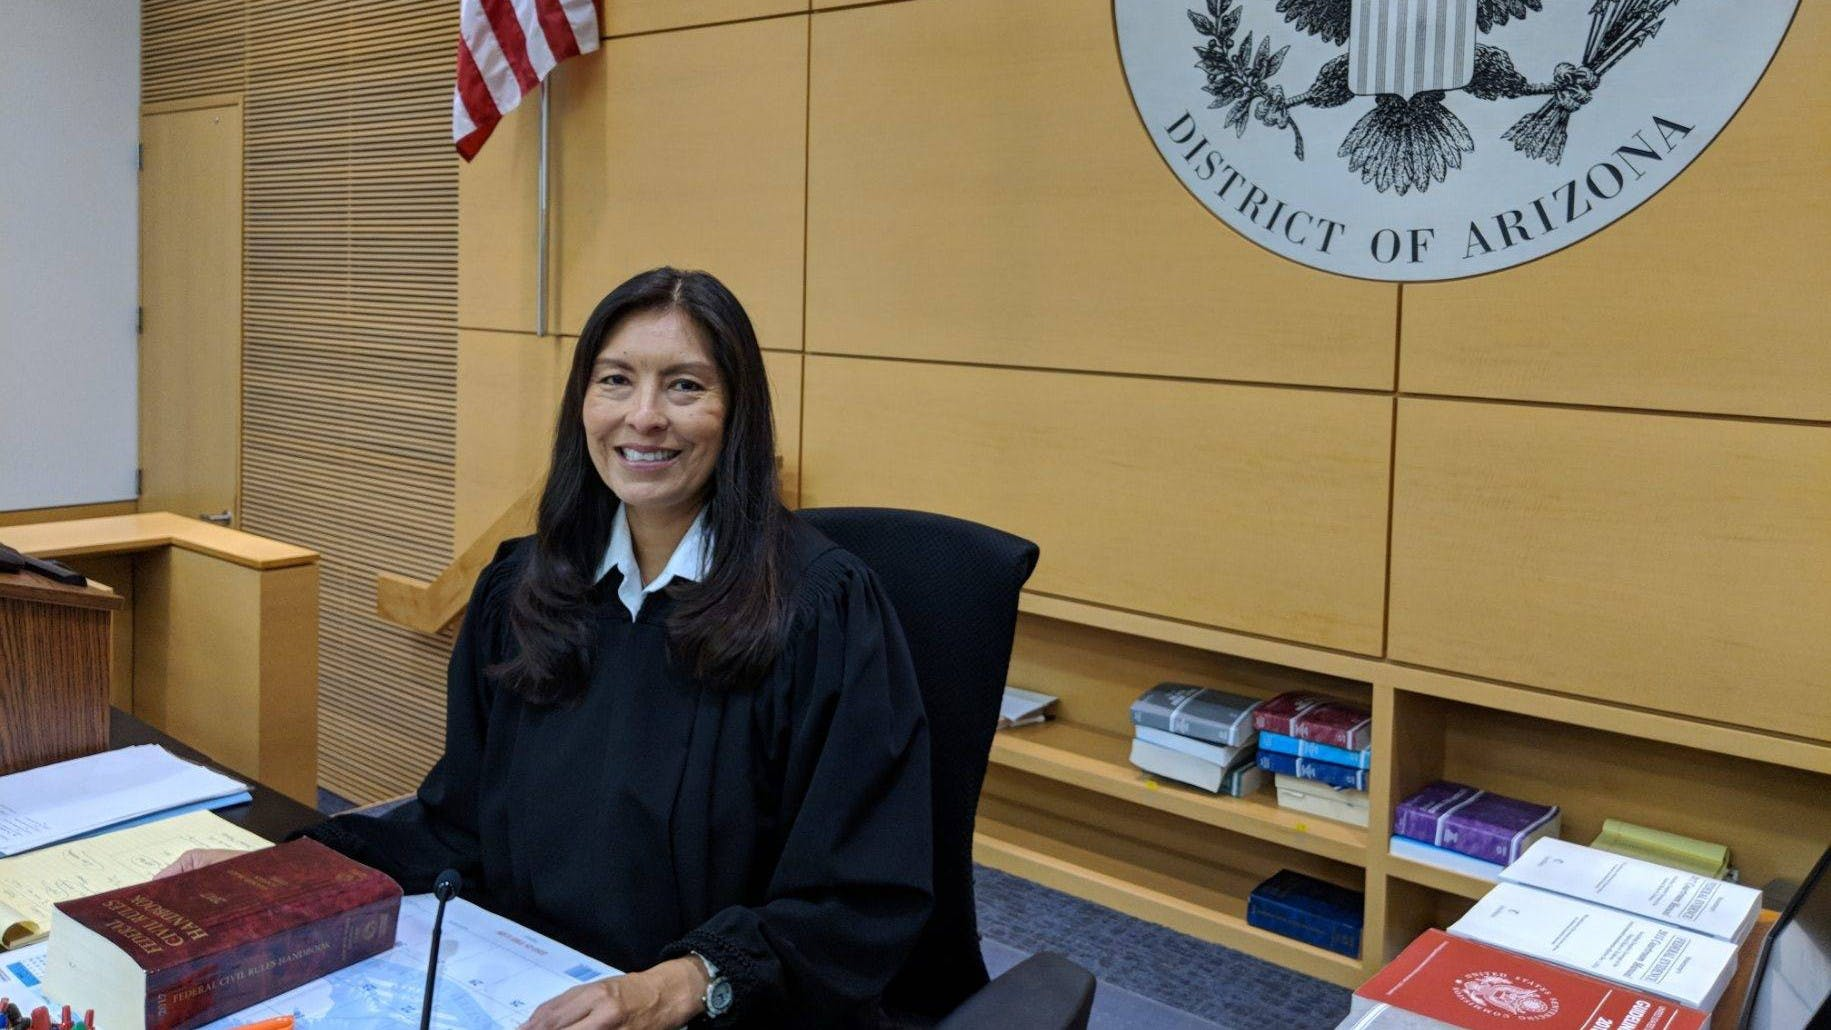 One active Native judge is less than one-quarter of 1 percent of the federal bench